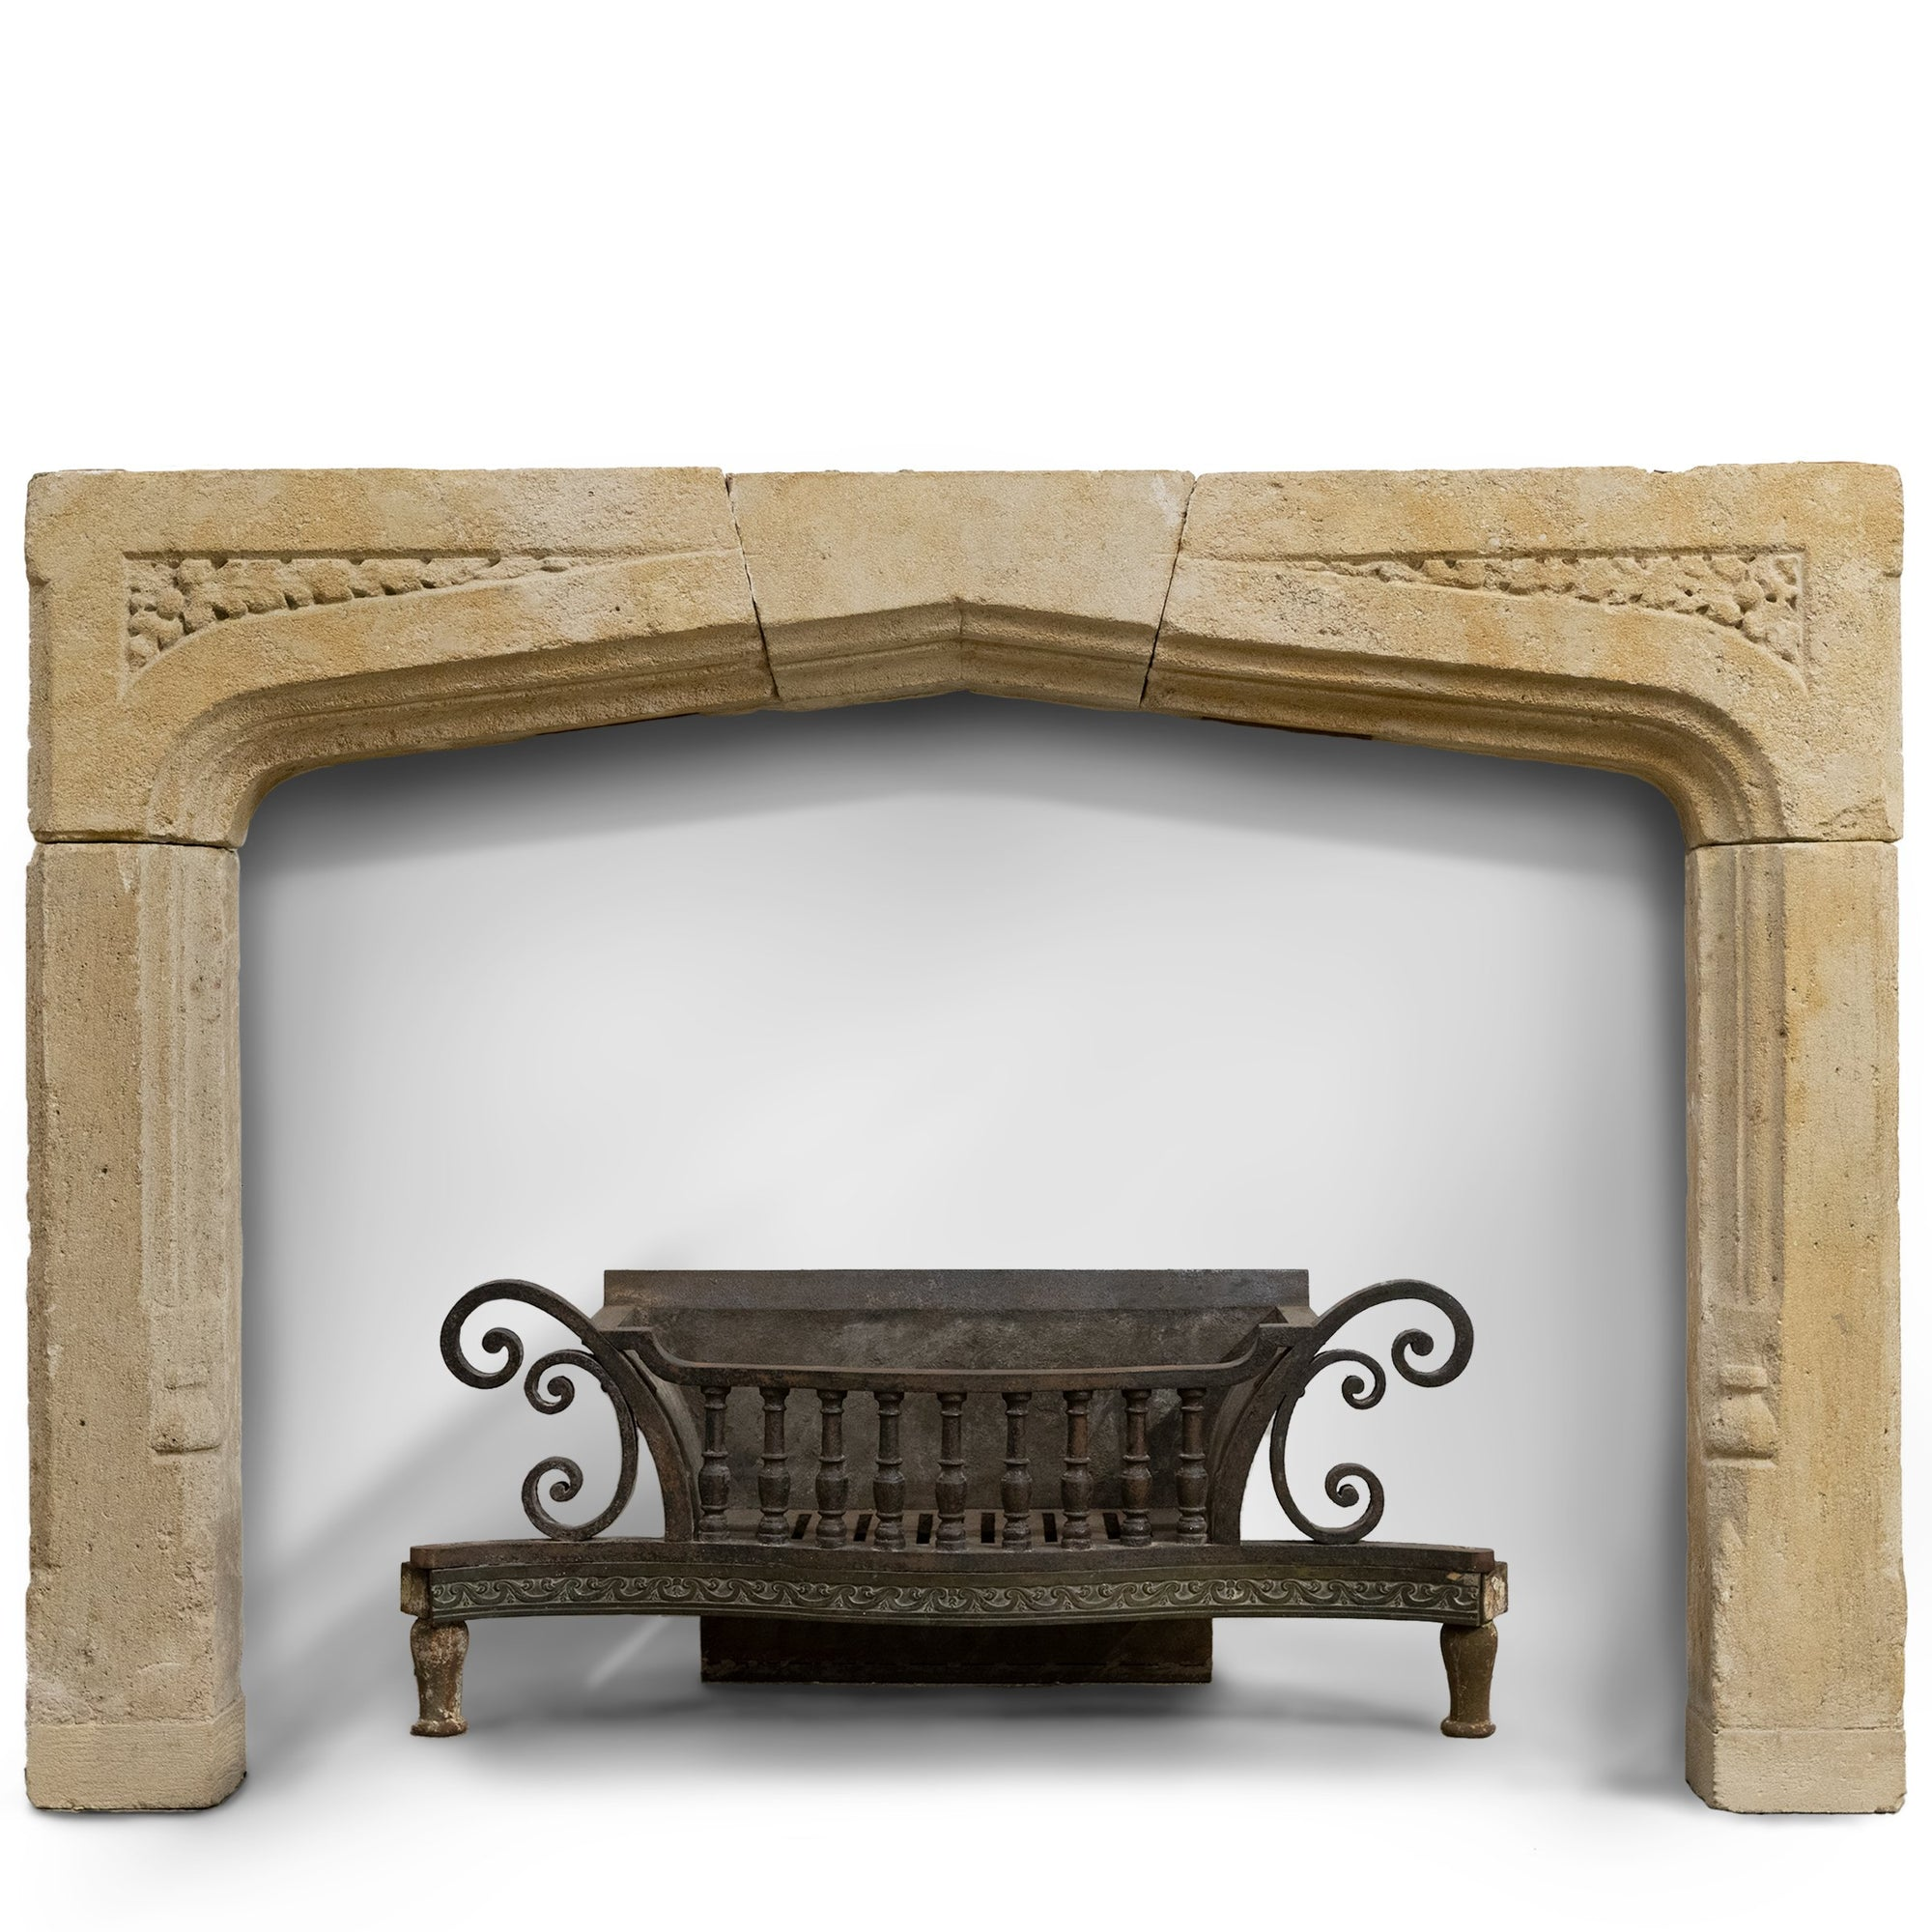 Antique Carved Stone Chimneypiece from King Edward VII Hospital London | The Architectural Forum?id=27974271336519